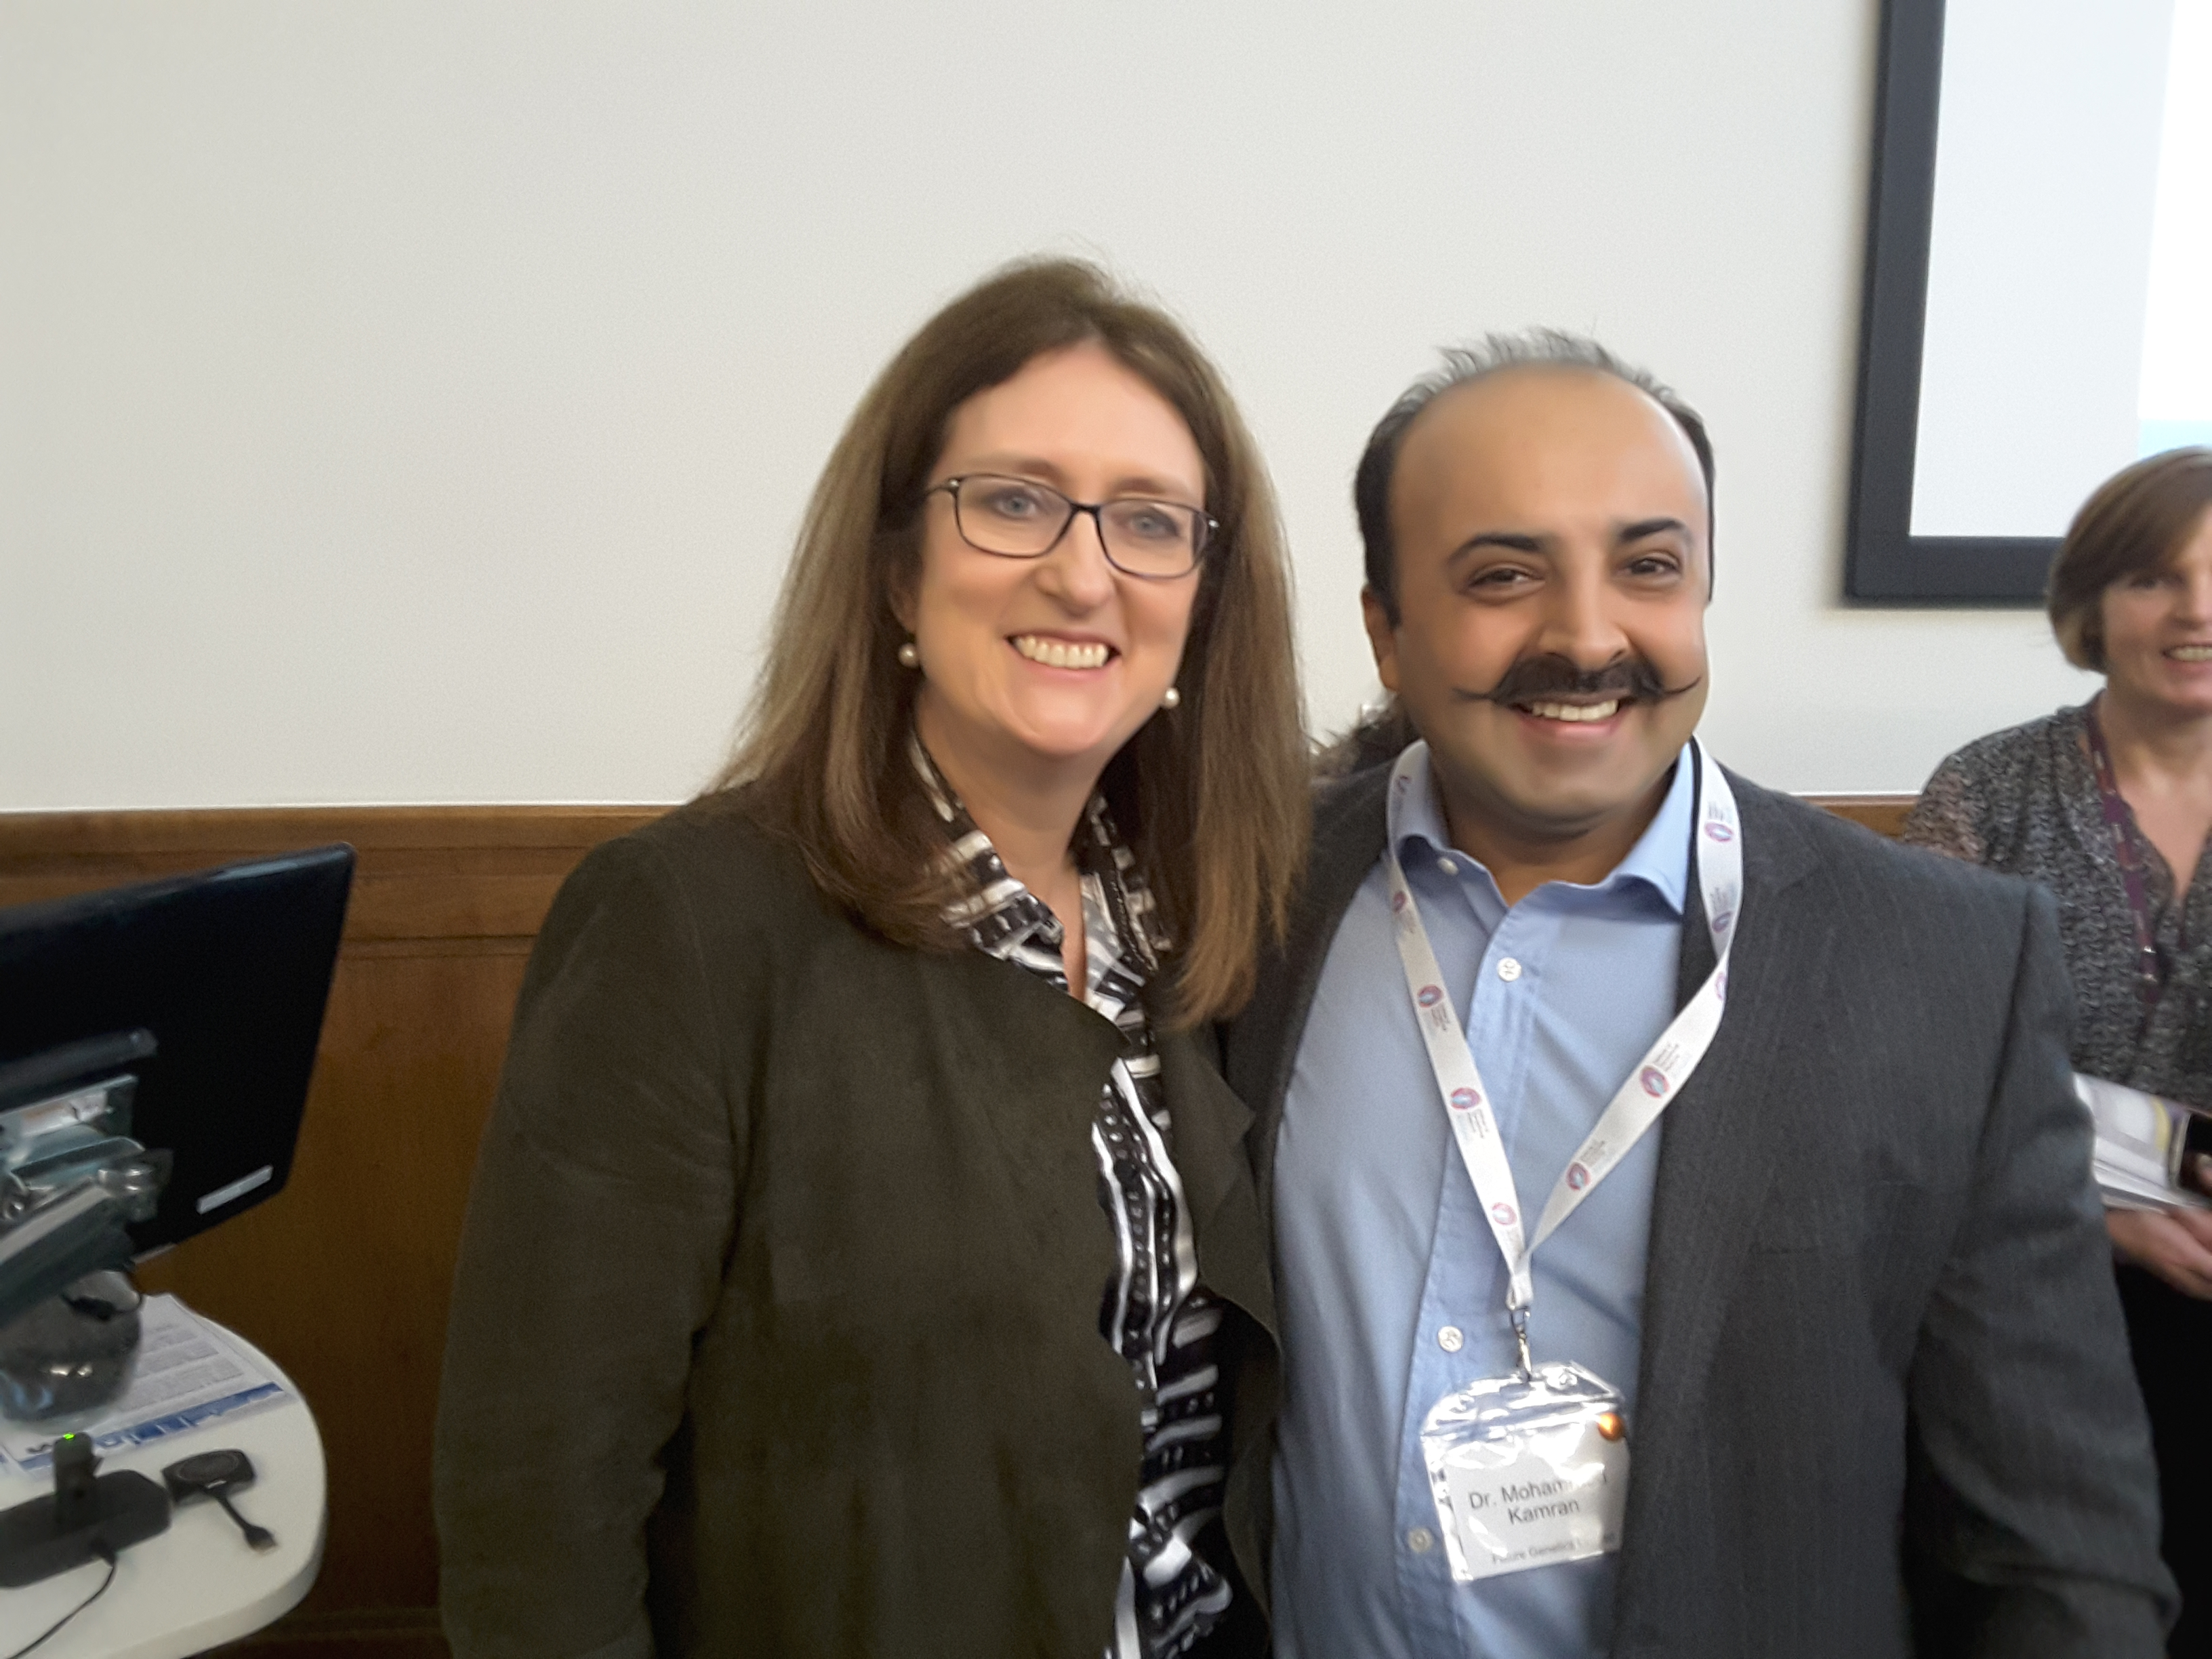 The Right Honourable Jacqui Smith (Chair University Hospitals Birmingham NHS Foundation Trust) and Dr Mohammed Kamran (CEO, Future Genetics)